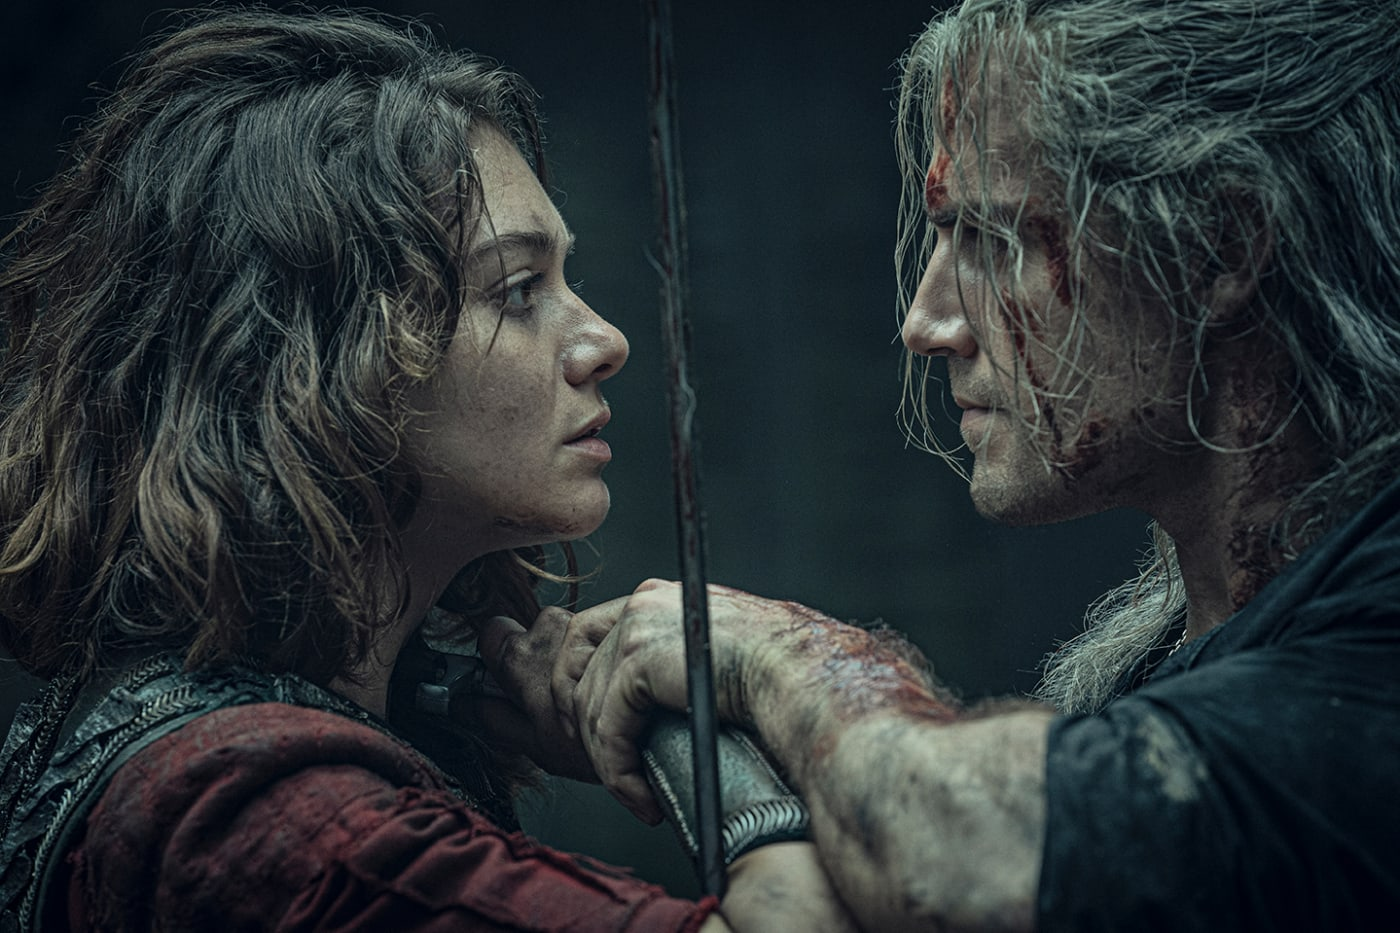 Production still from Netflix series 'The Witcher'